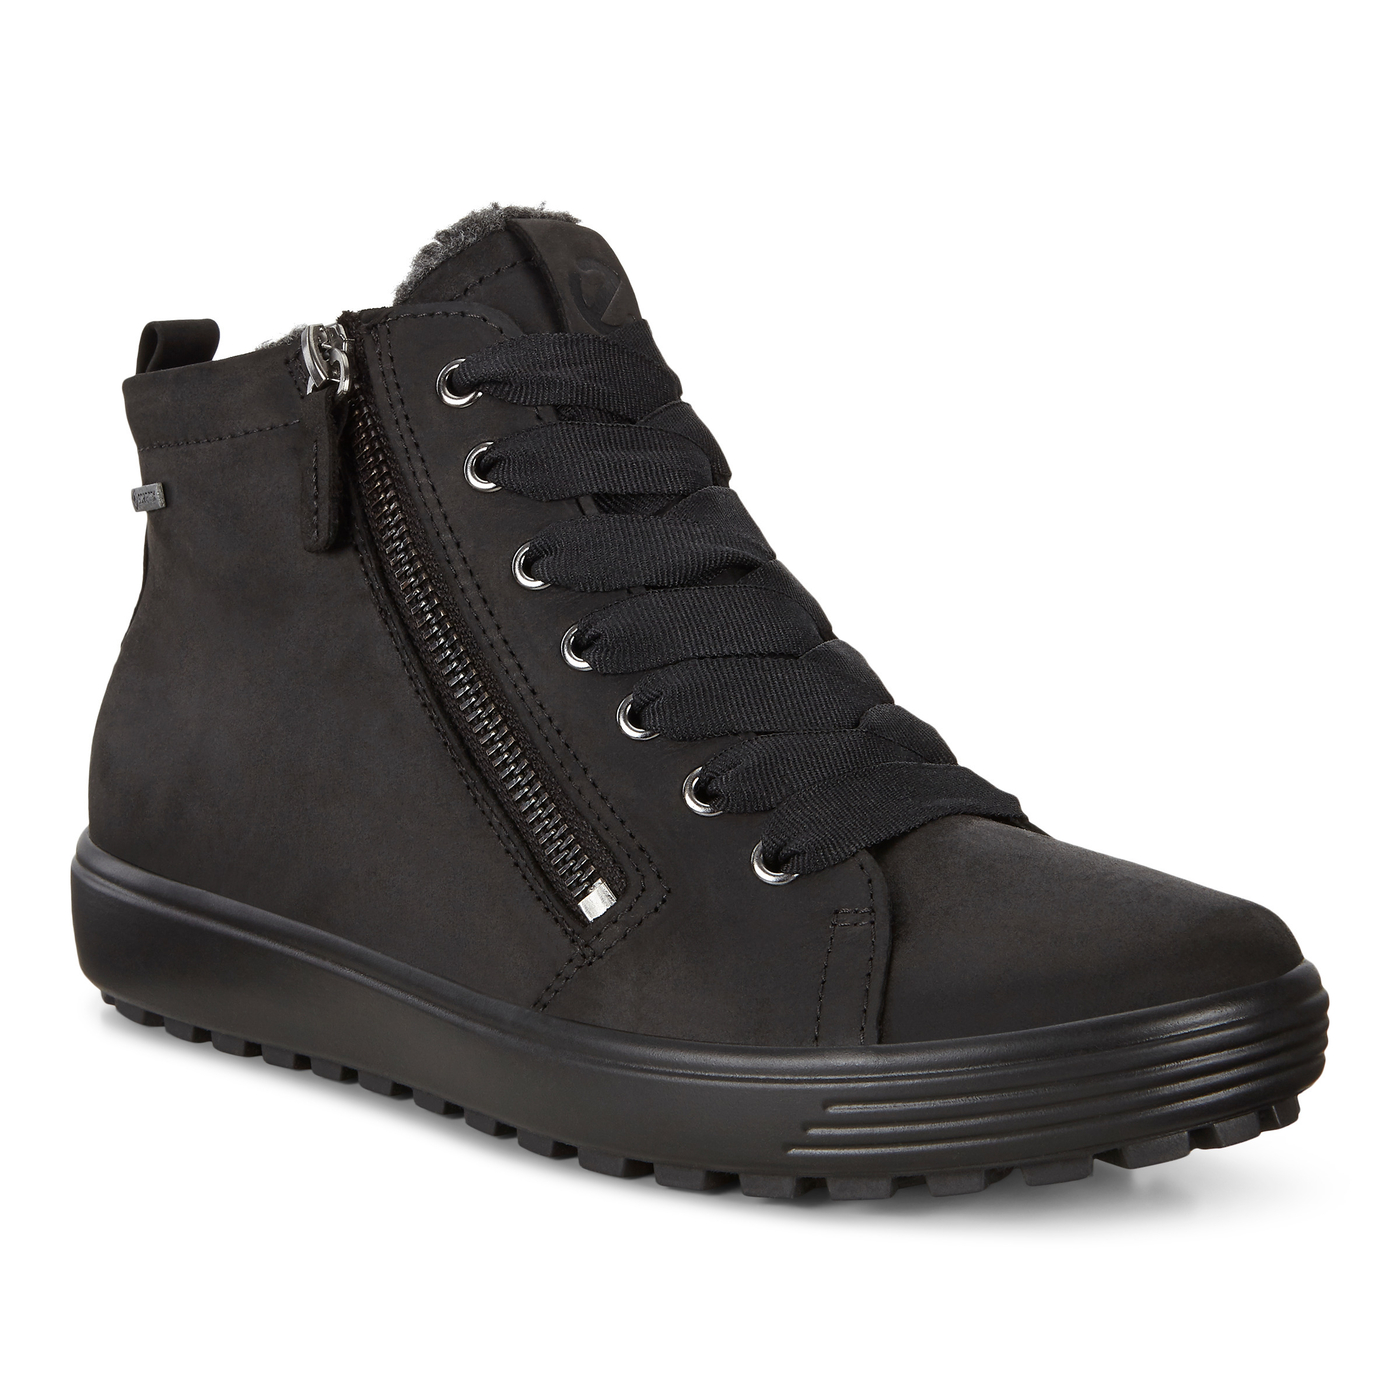 ECCO SOFT7 TRED Womens Outdoor Low Cut HM